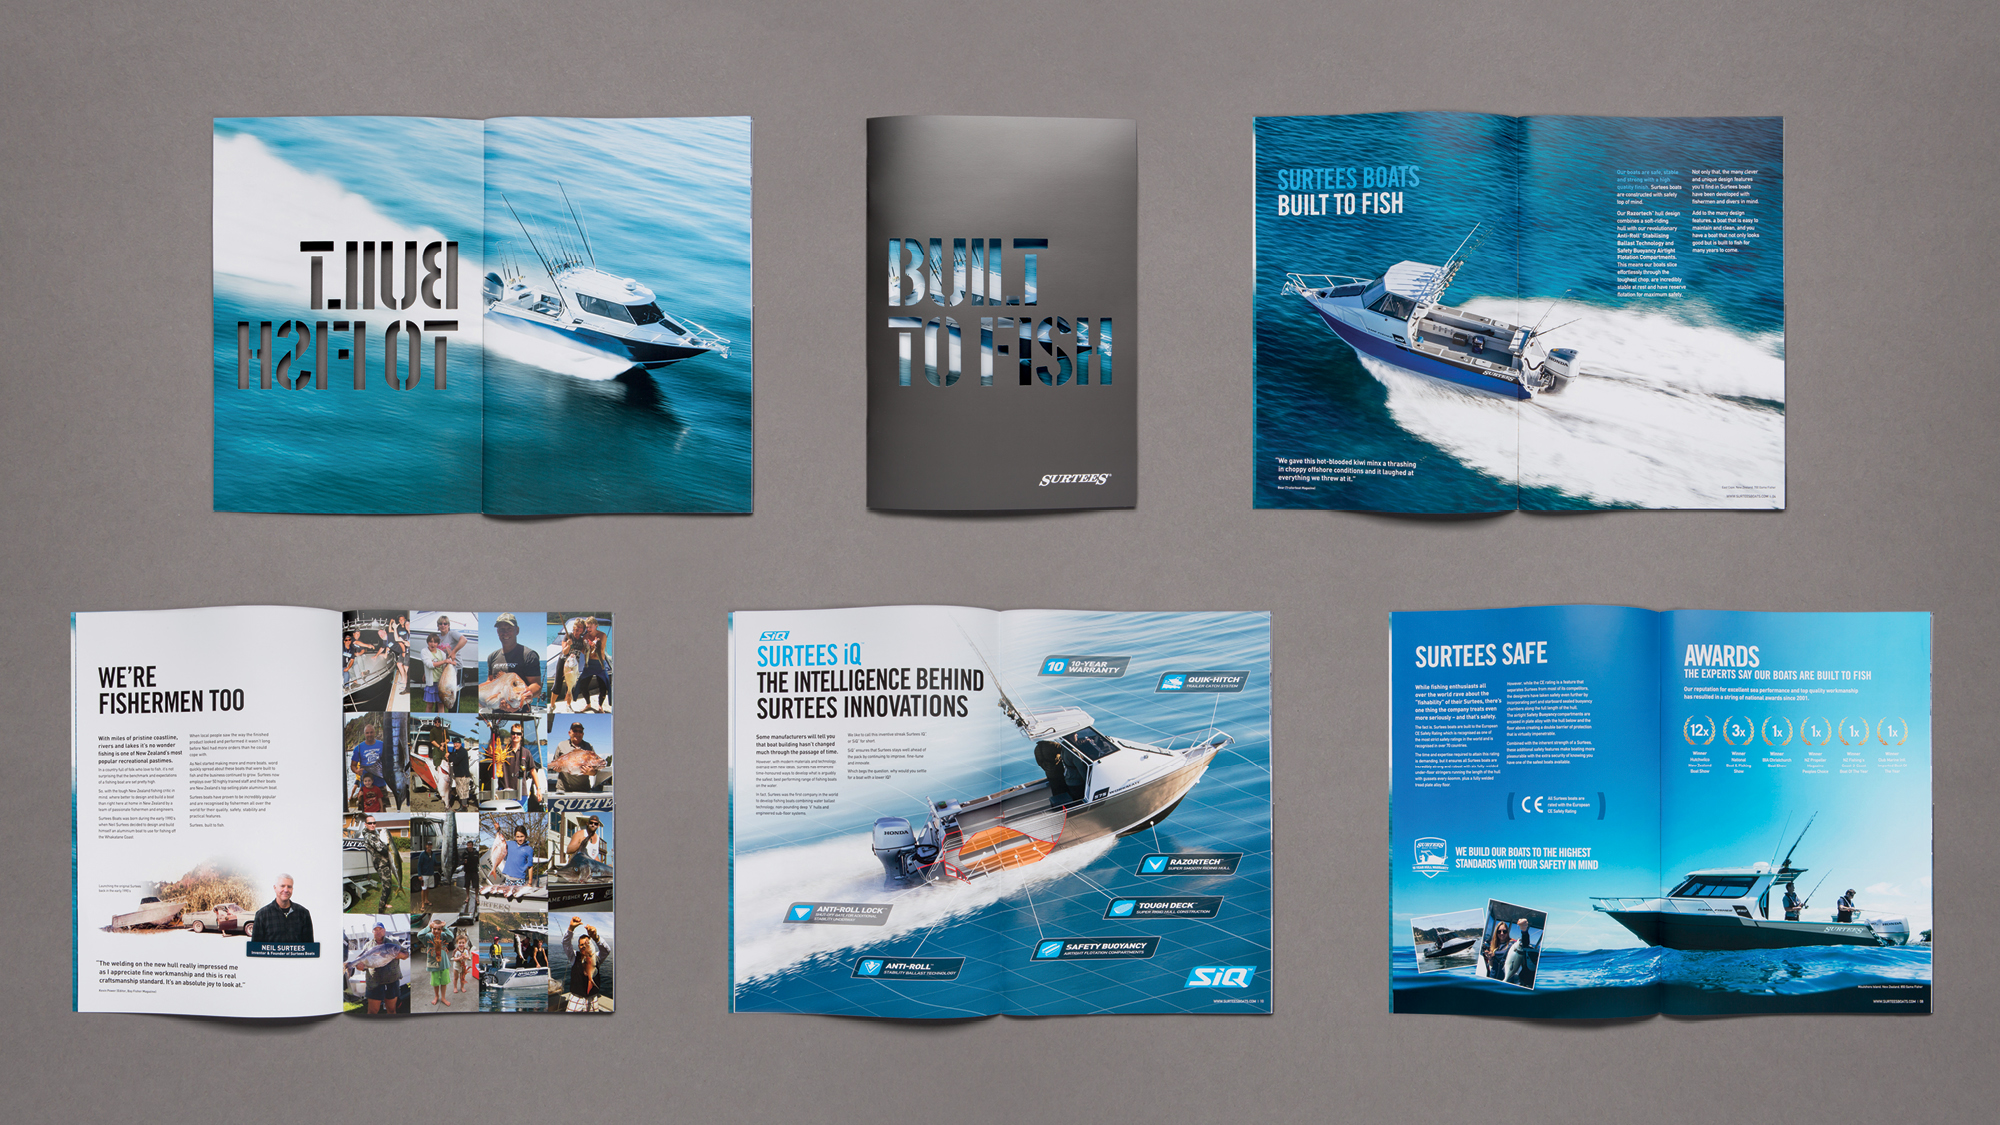 onfire design surtees boats branding design 02